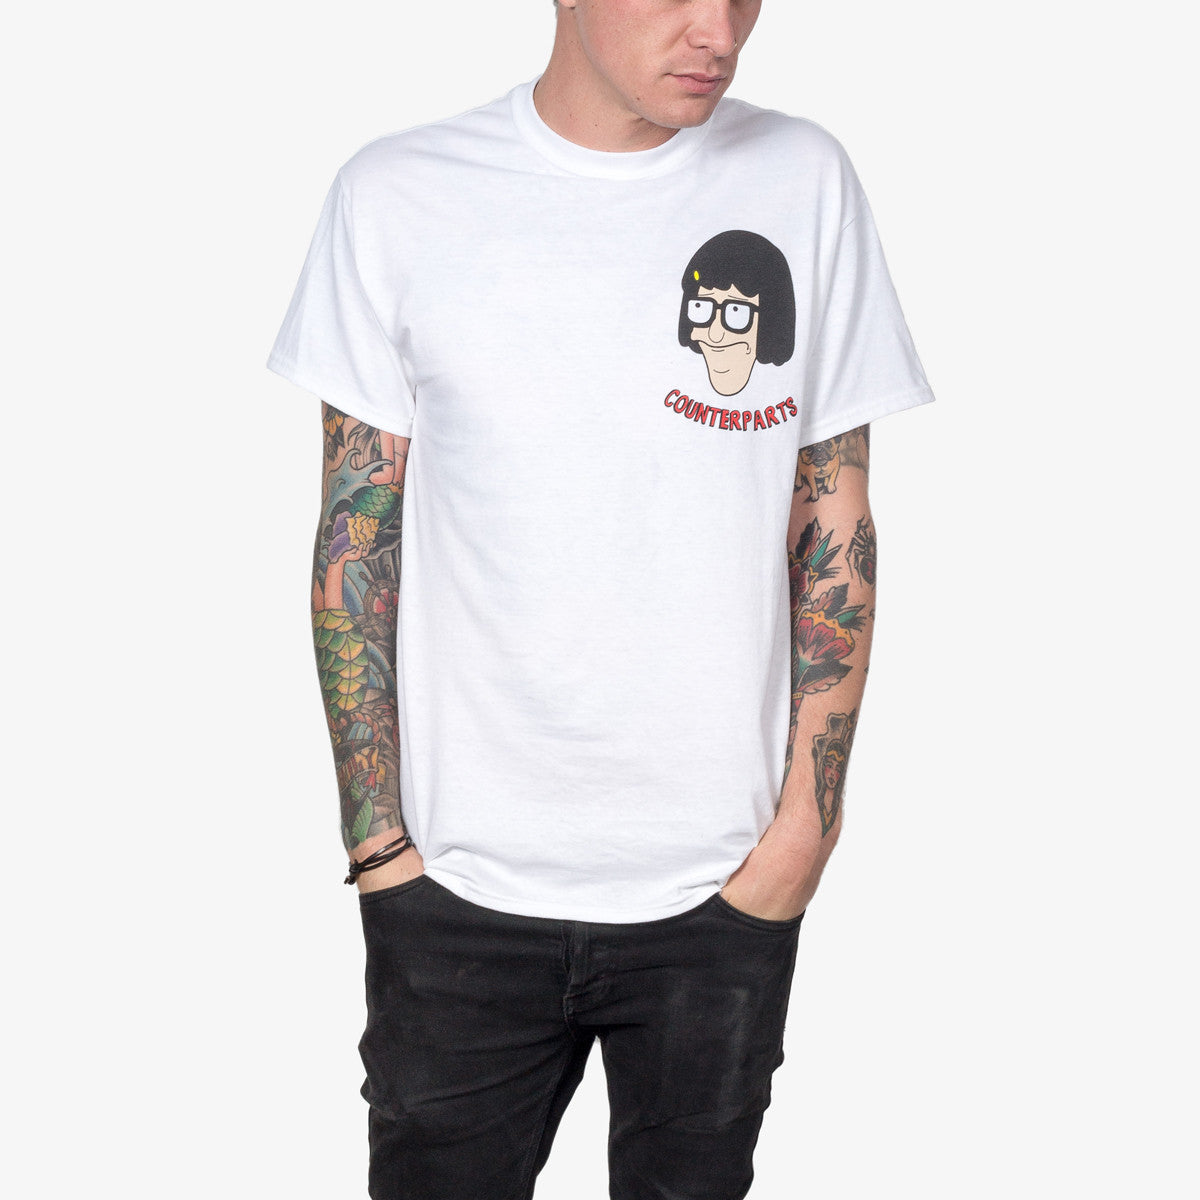 Counterparts - Everything Is OK Shirt Counterparts - Everything Is OK Shirt  ...